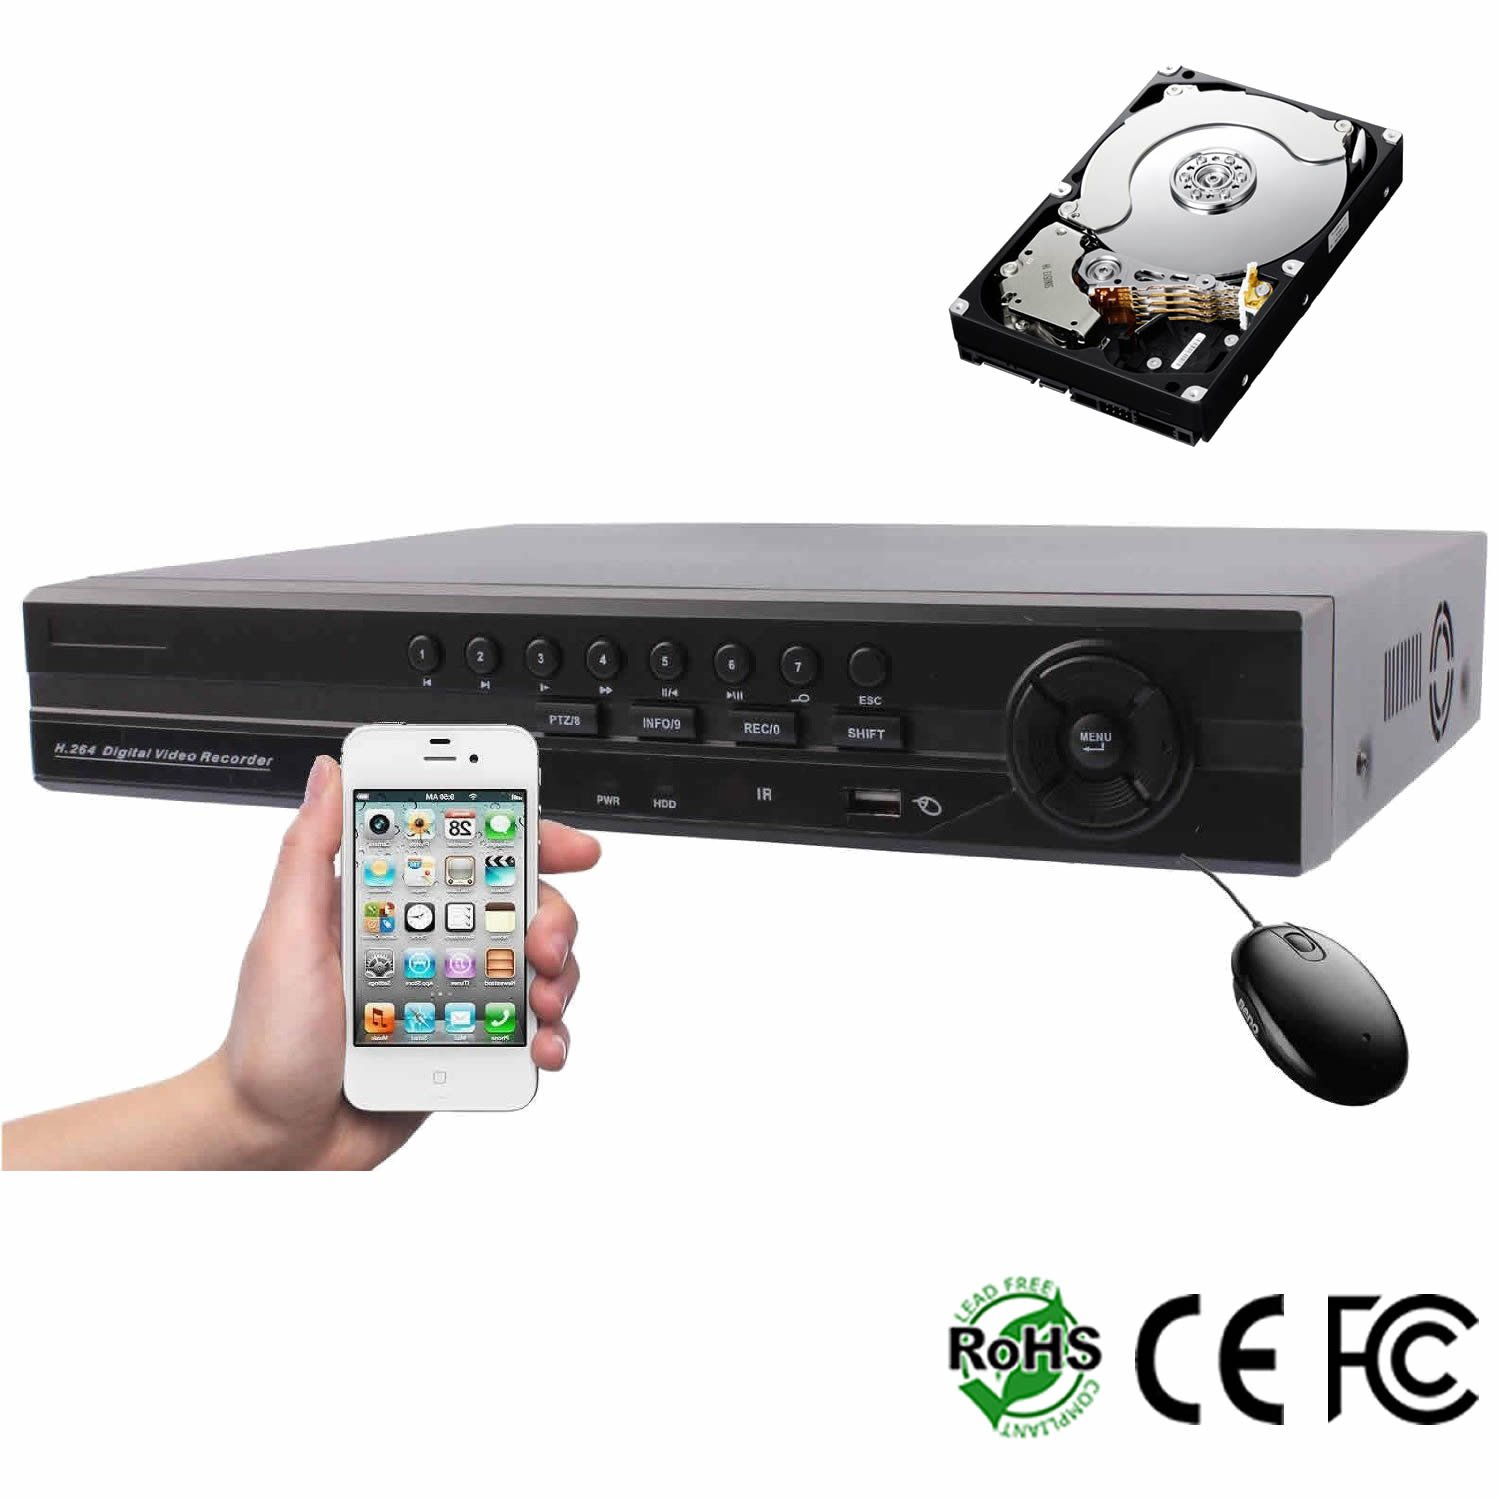 HDView (Business Series) 9CH 5-in-1 Security 1080P HD DVR/NVR: 8 Channel (TVI/AHD/CVI/960H) Cameras and 1 Channel ONVIF IP Cameras, 1TB HDD Installed, Surge Protection CoC Commercial Grade